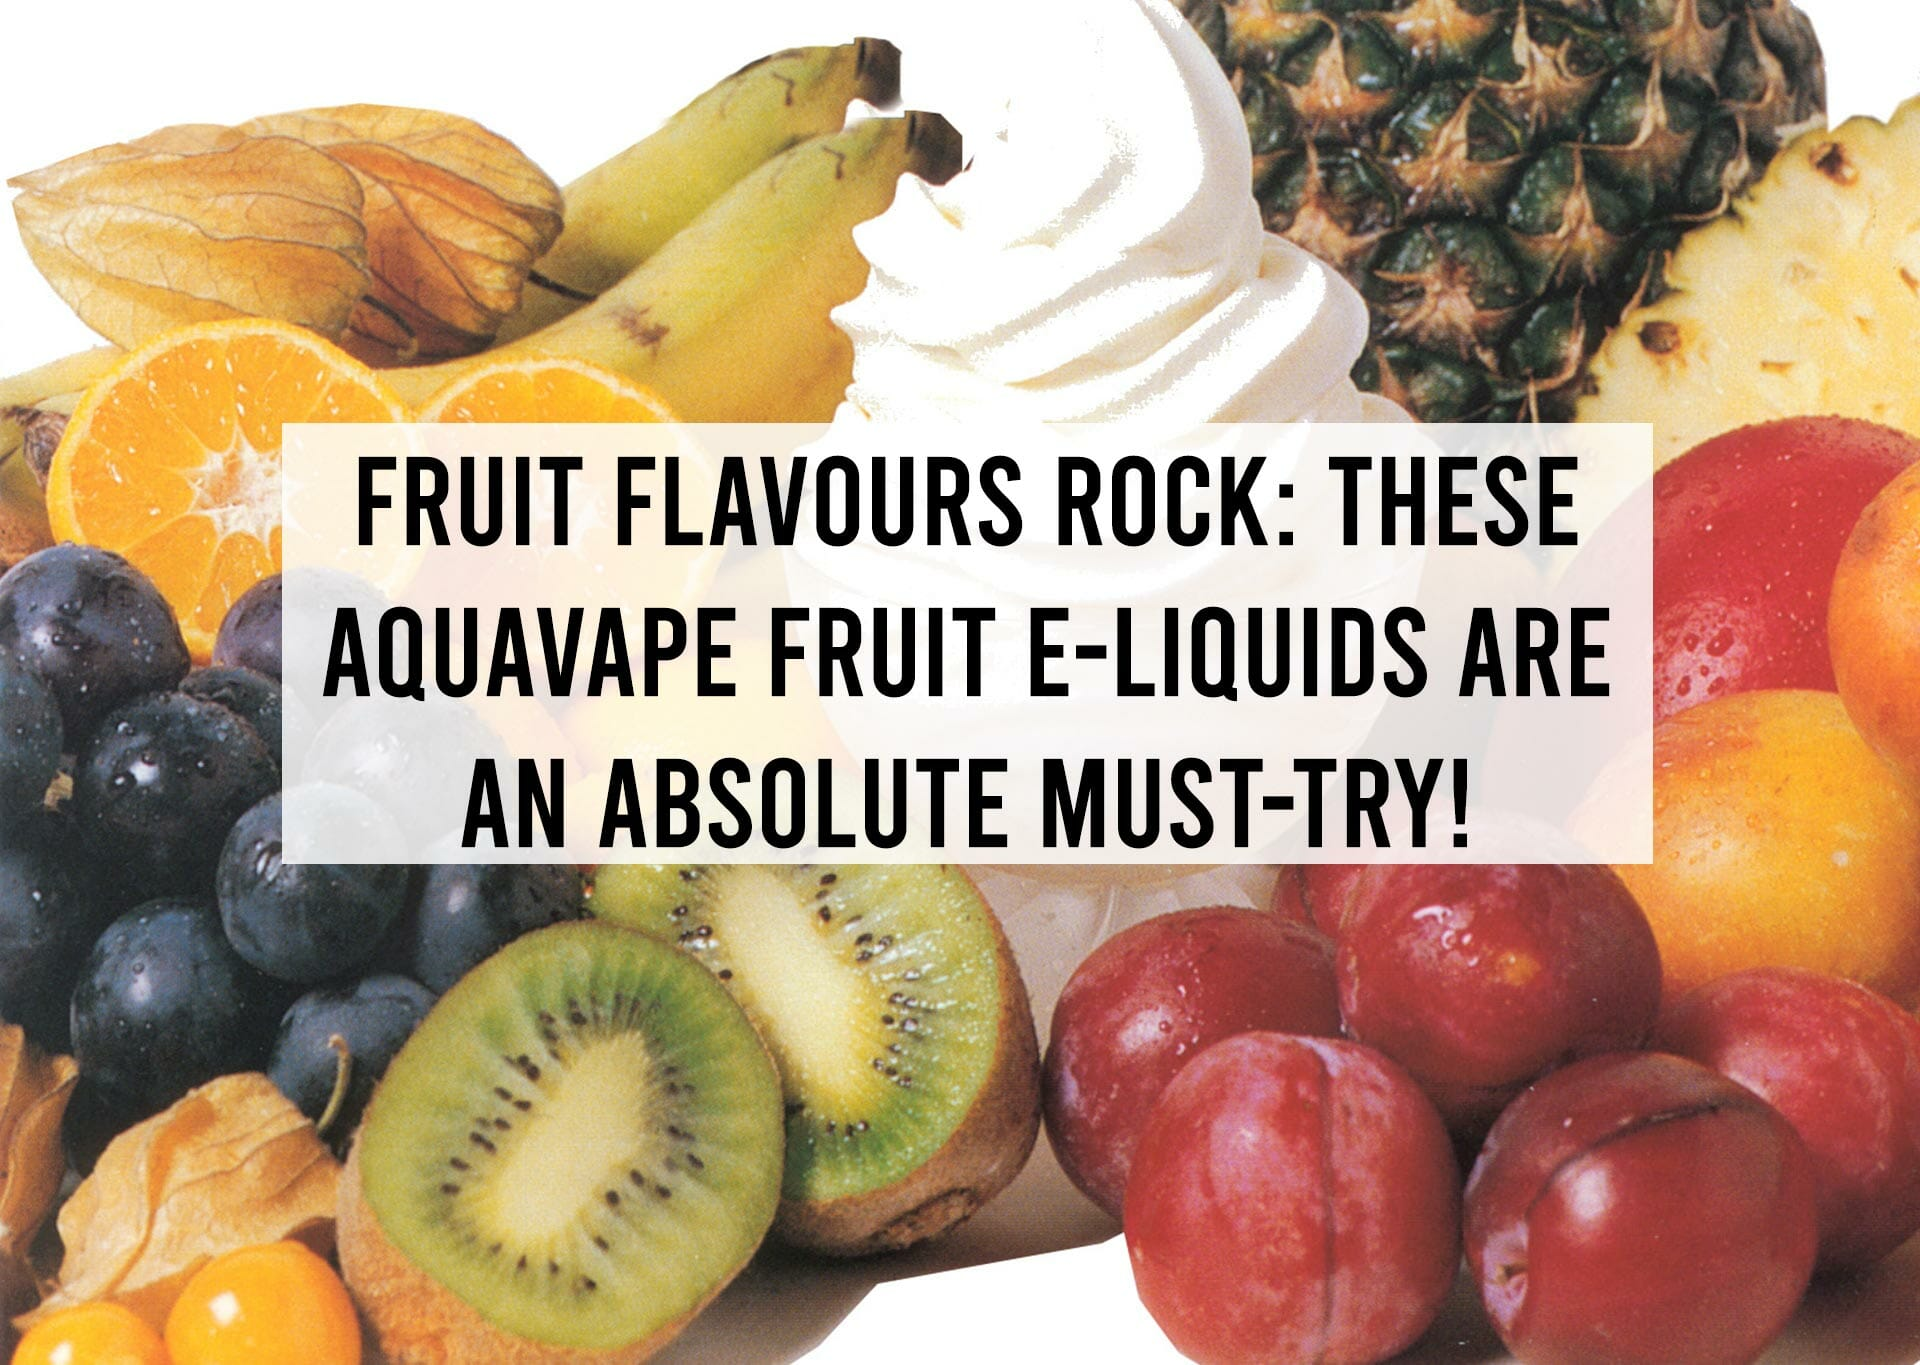 Fruit-Flavours-Rock--These-AquaVape-Fruit-E-Liquids-are-an-Absolute-Must-try!